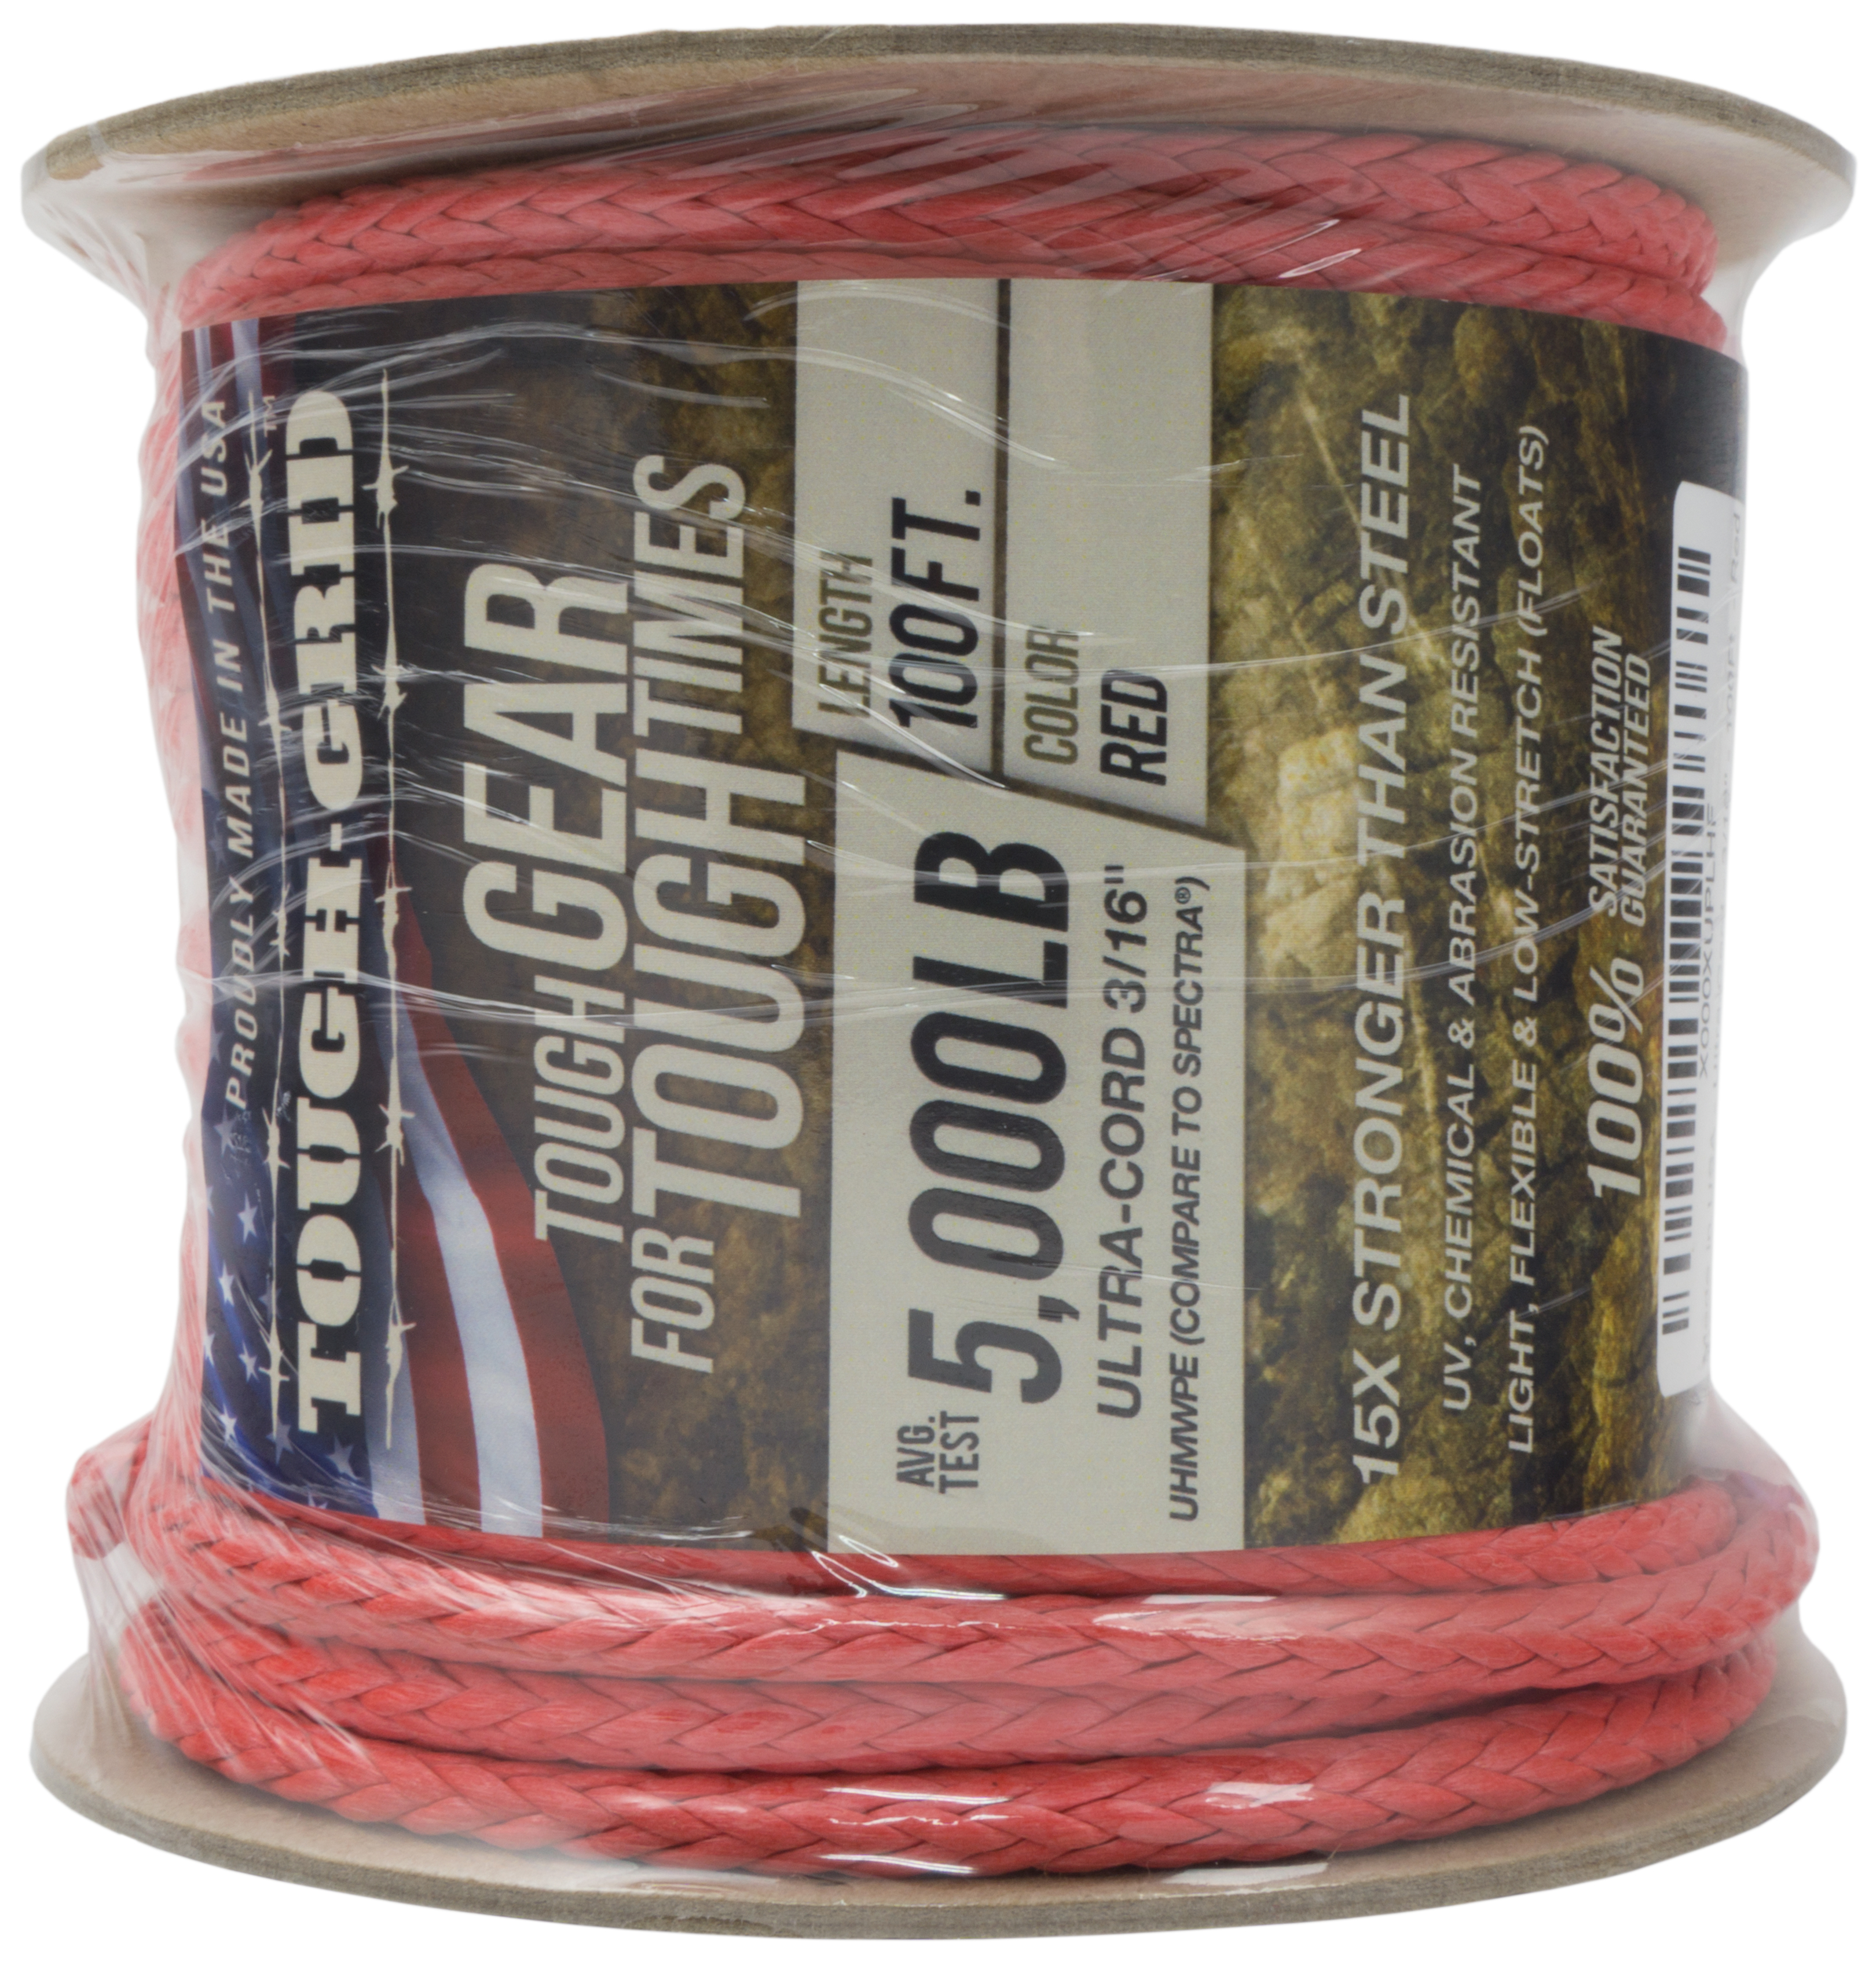 UHMWPE-ultra-high-molecular-weight-polyethylene-ultra-cord-red-100ft-compare-to-dyneema-spectra-or-amsteel2